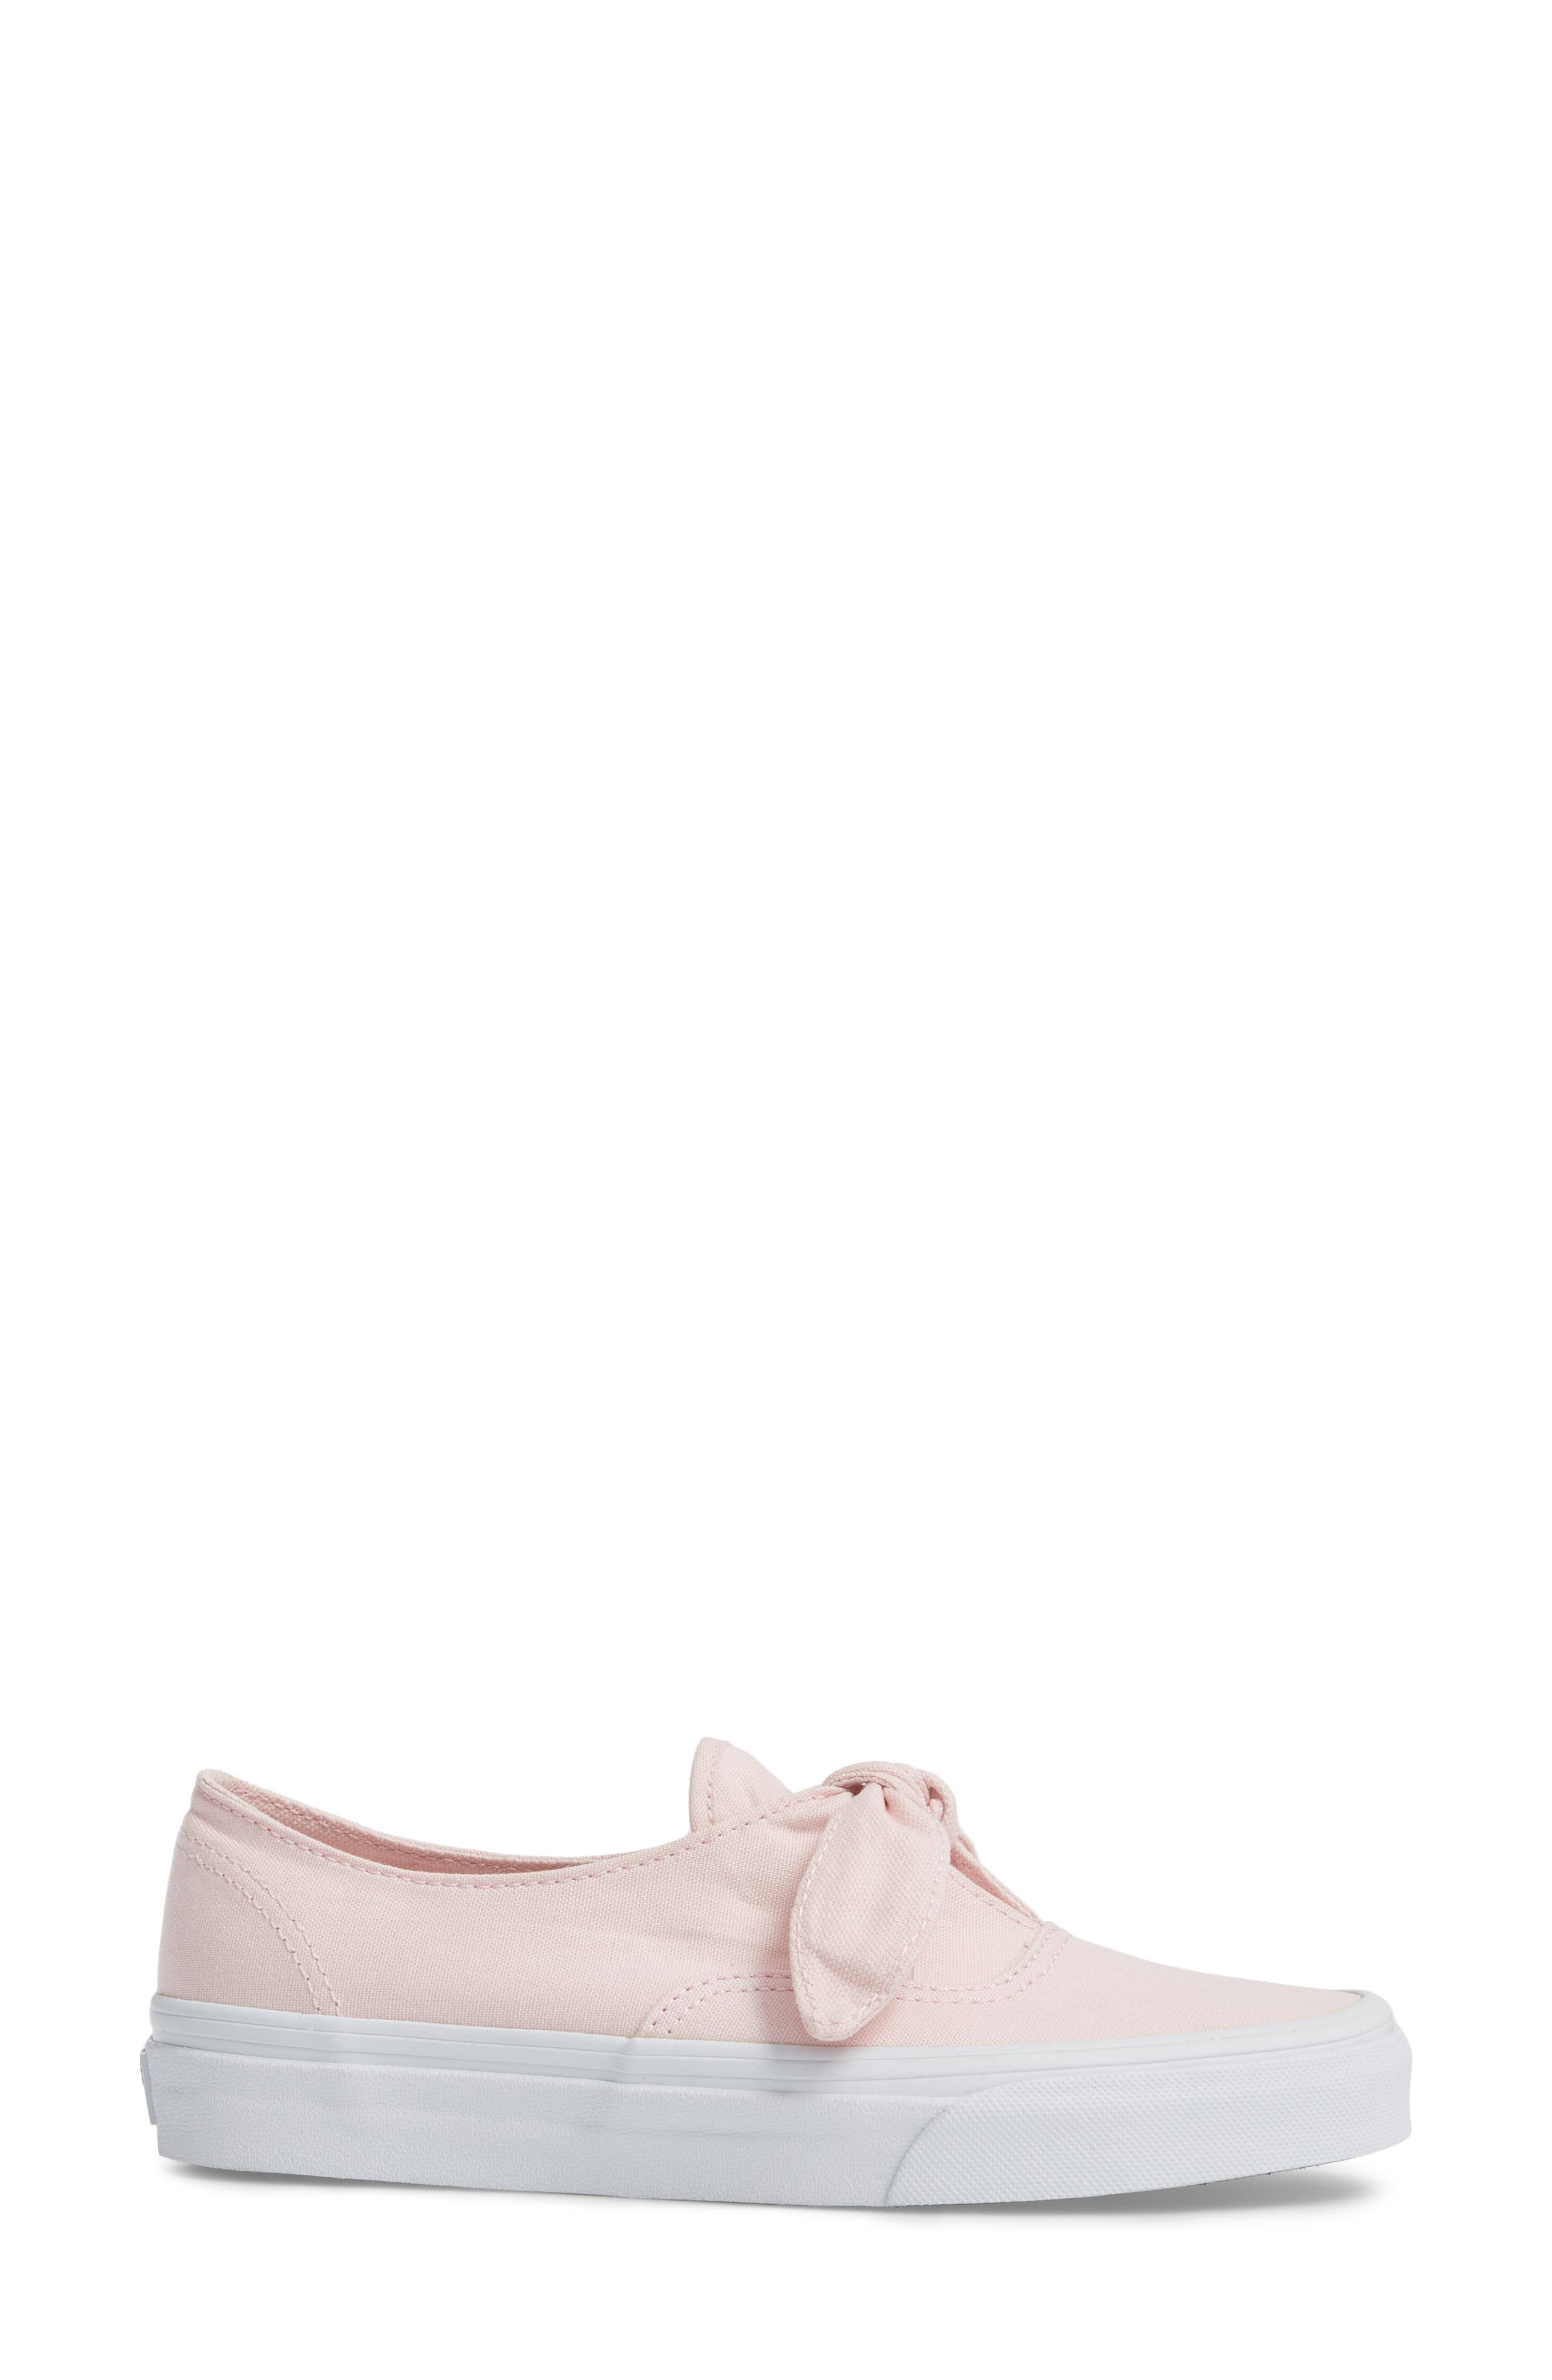 UA Authentic Knotted Slip-On Sneaker,                             Alternate thumbnail 3, color,                             Chalk Pink/ True White